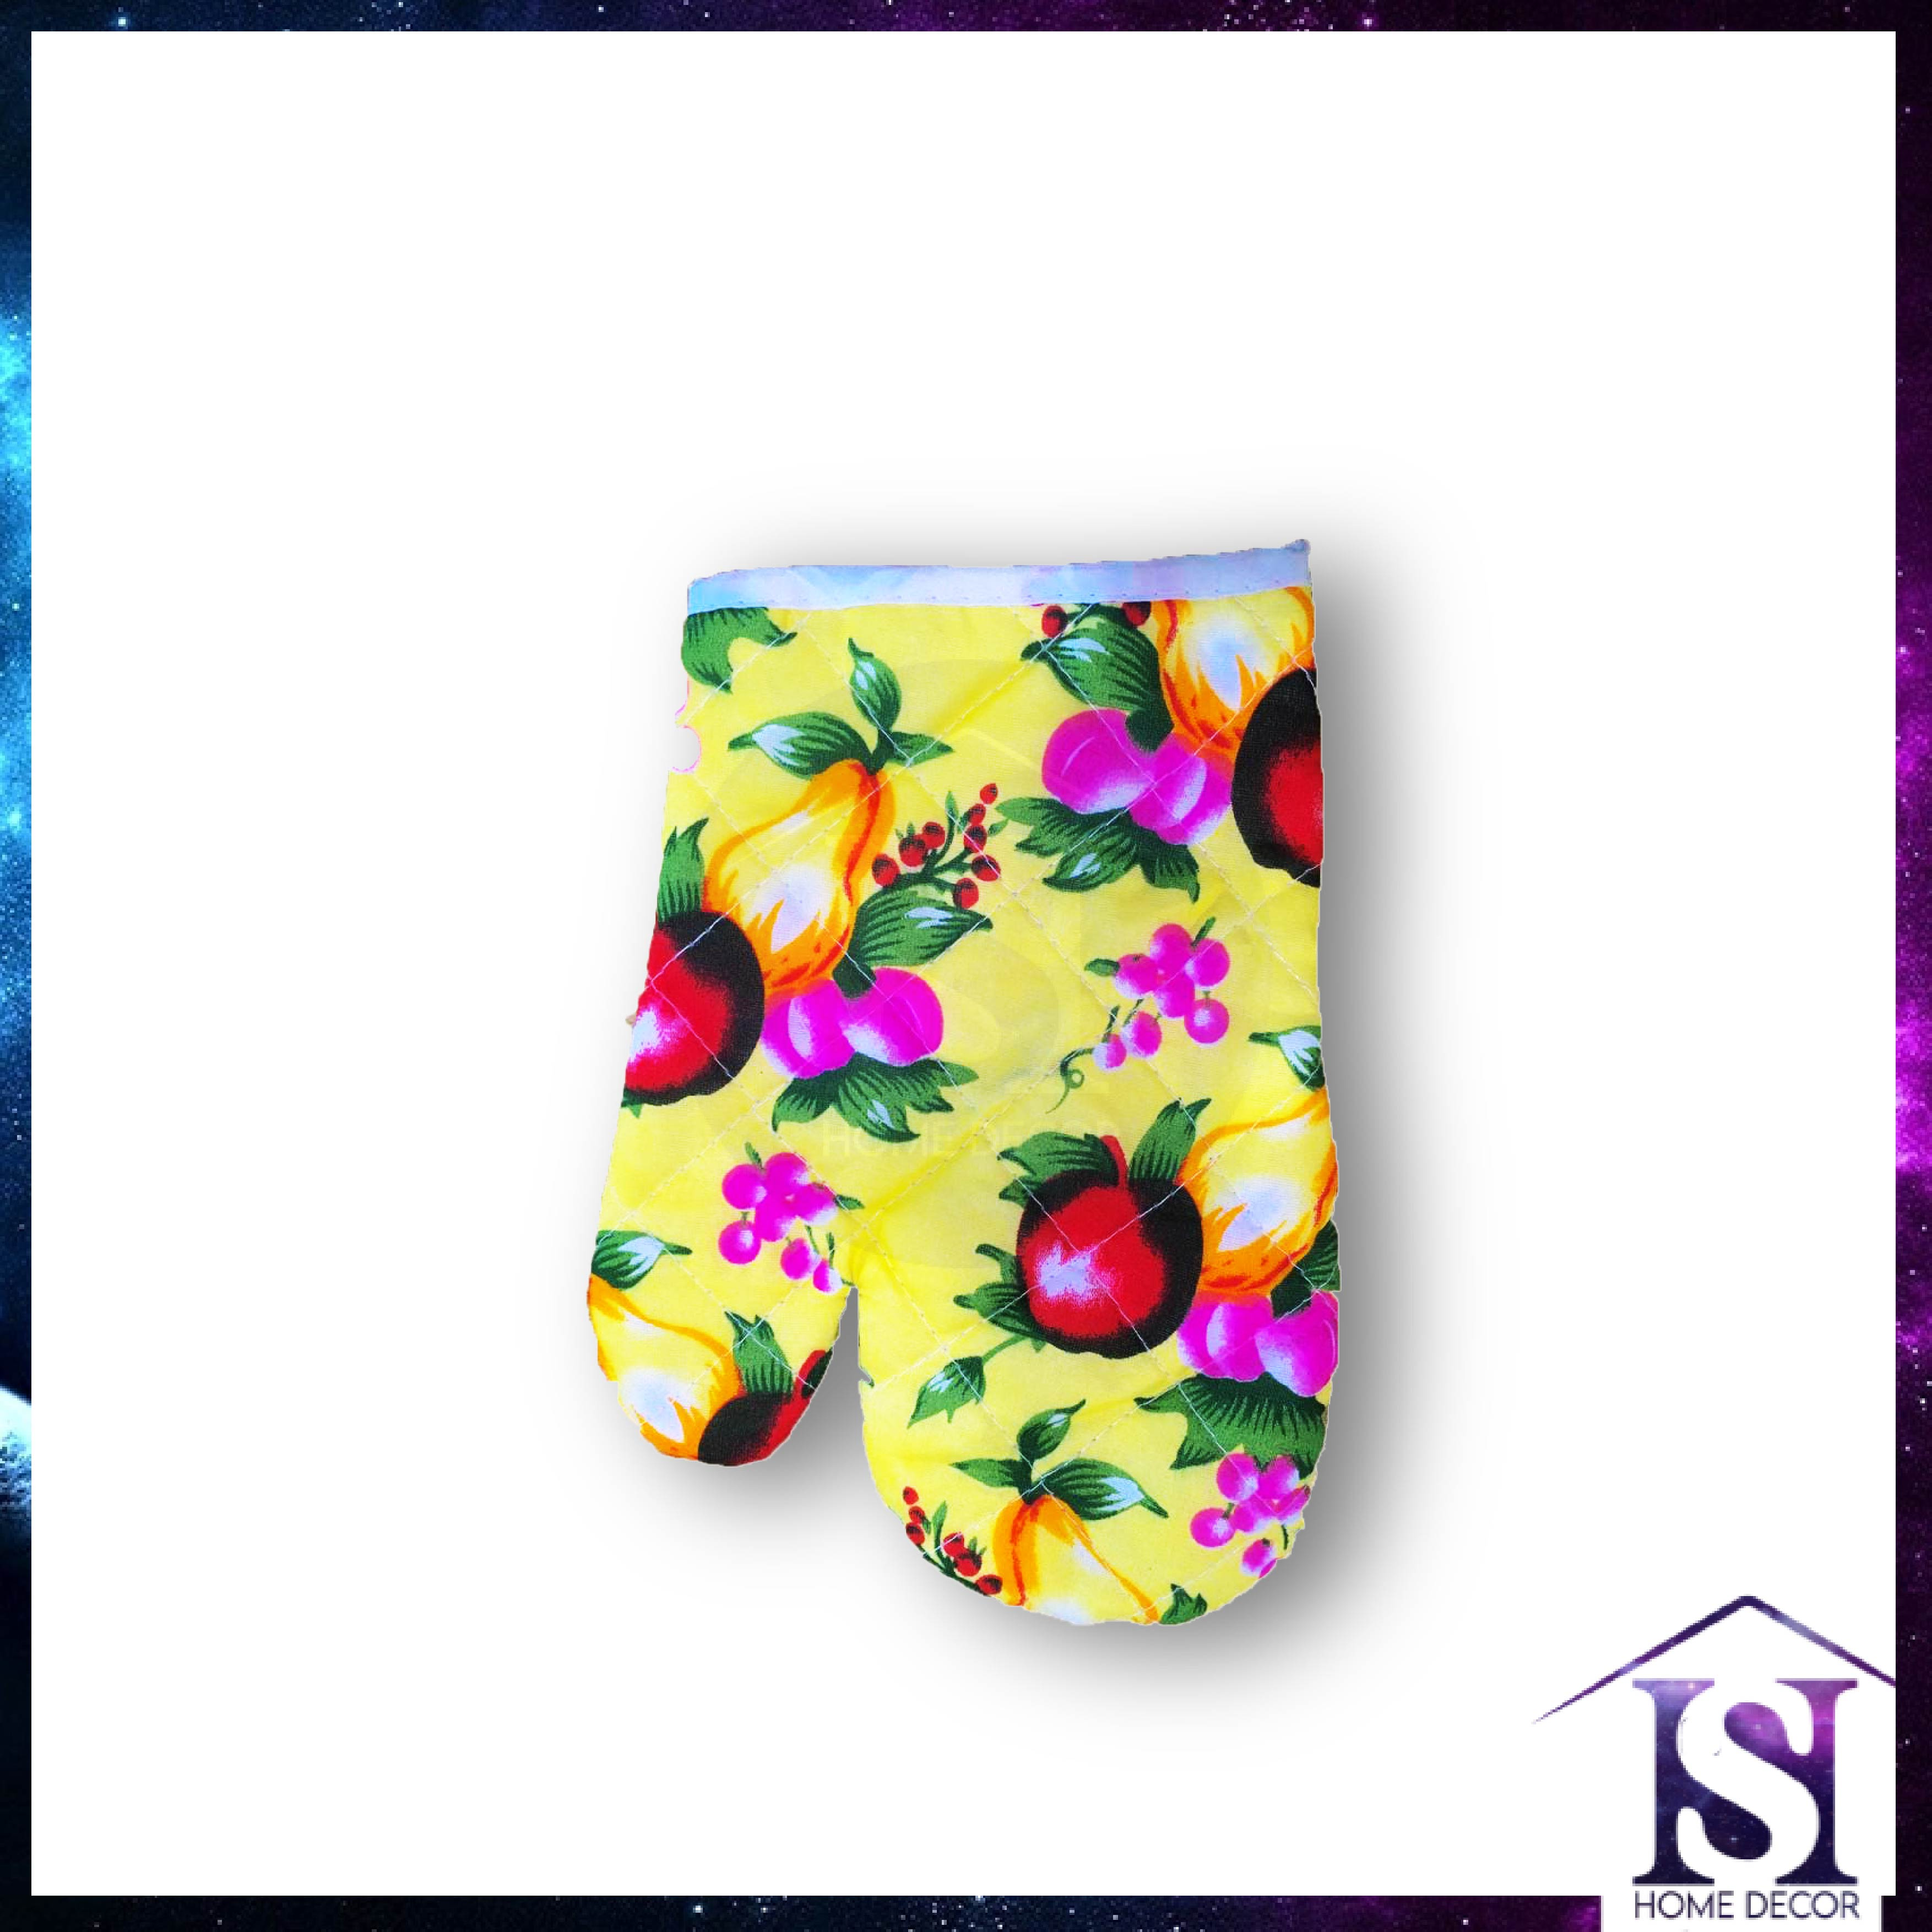 (RANDOM) Oven Glove Heatproof Microwave Oven Multipurpose High Temperature Anti Scalding Microwave Oven Glove Thickened Gloves